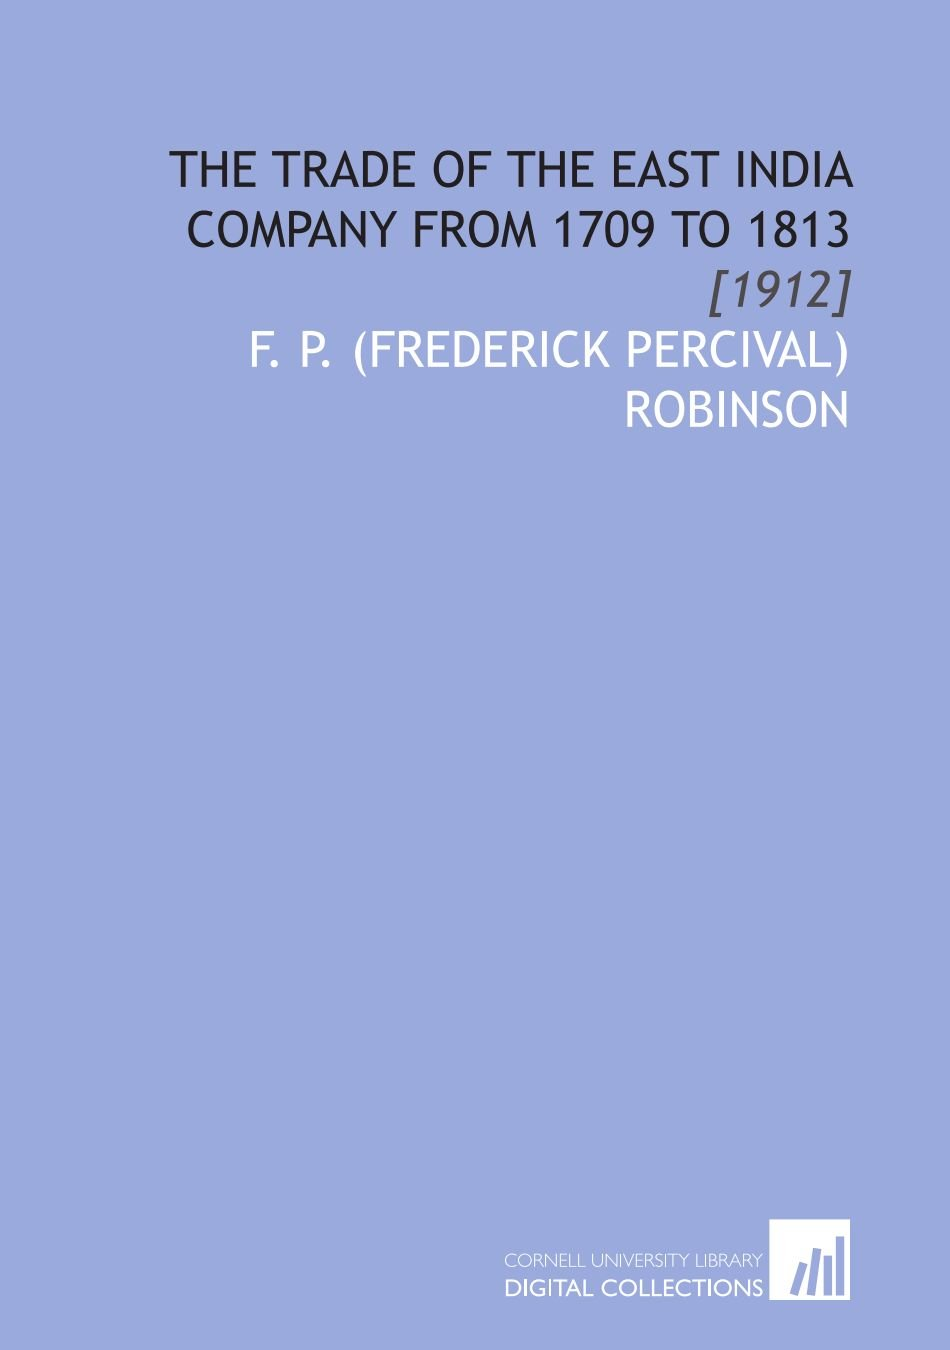 The Trade of the East India Company From 1709 to 1813: [1912] pdf